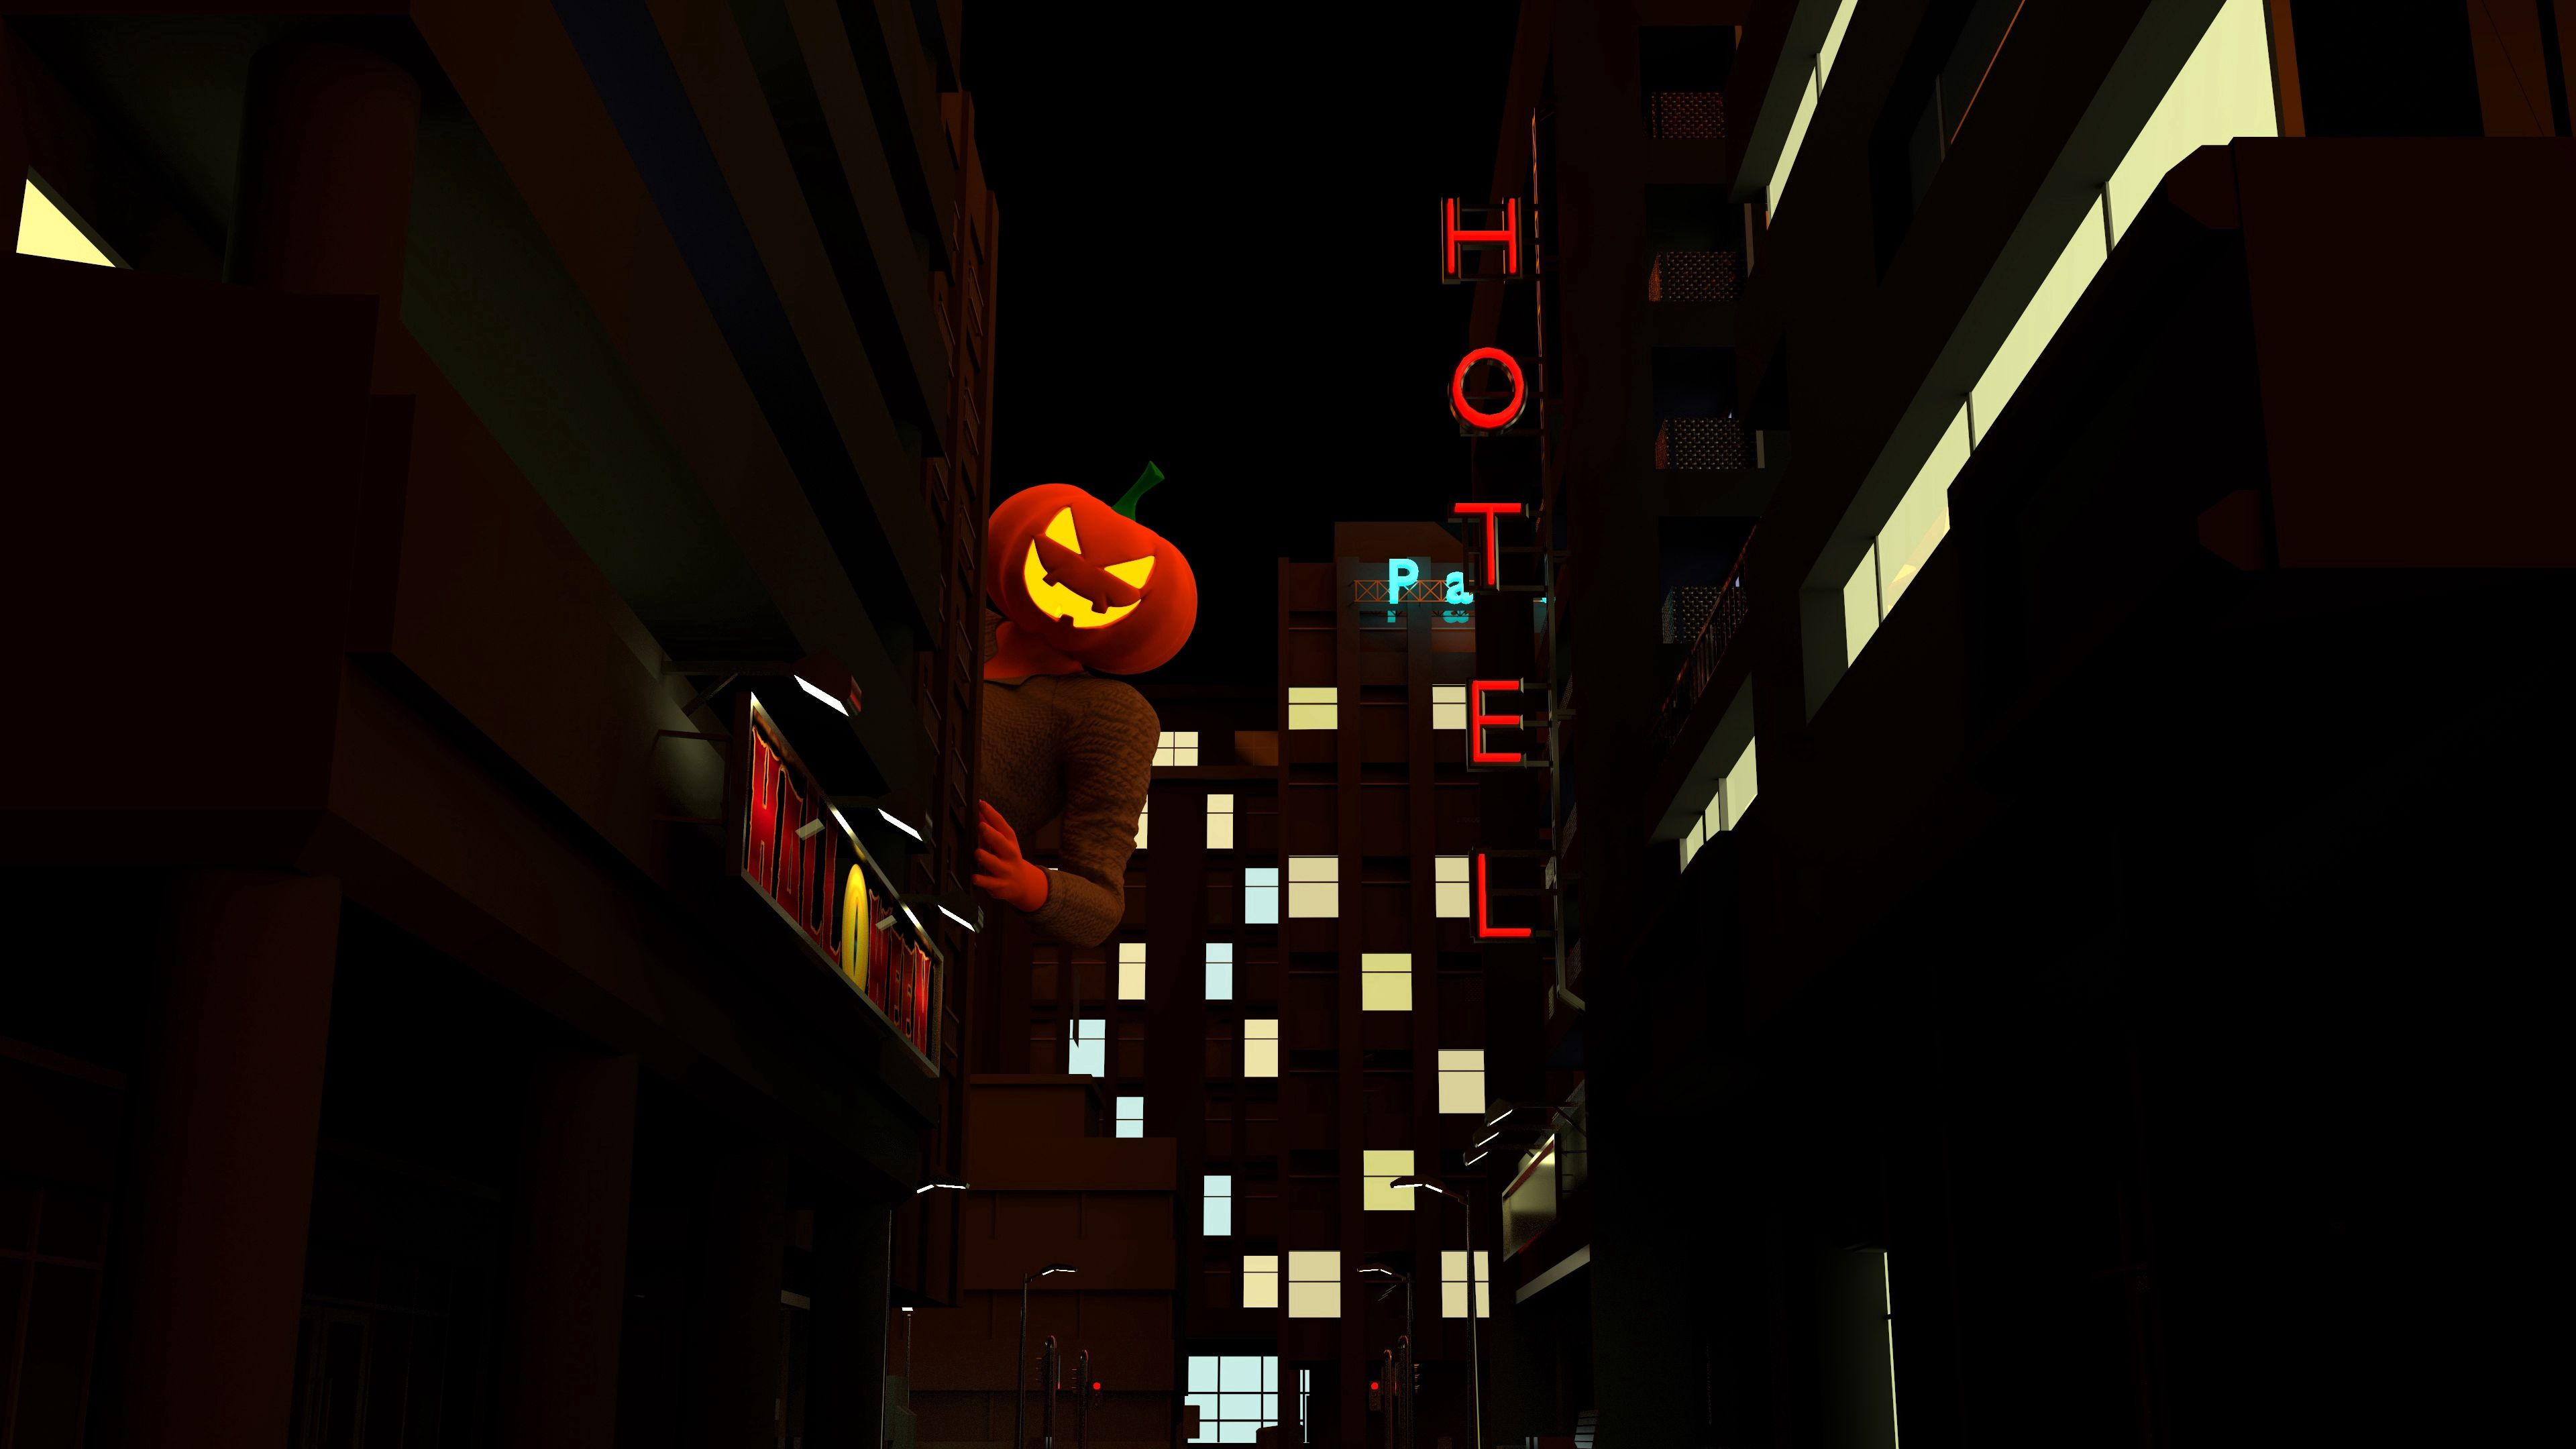 83144 download wallpaper Holidays, Halloween, Dark, Night City, Peek Out, Look Out, Jack Lamp, Jack's Lamp screensavers and pictures for free